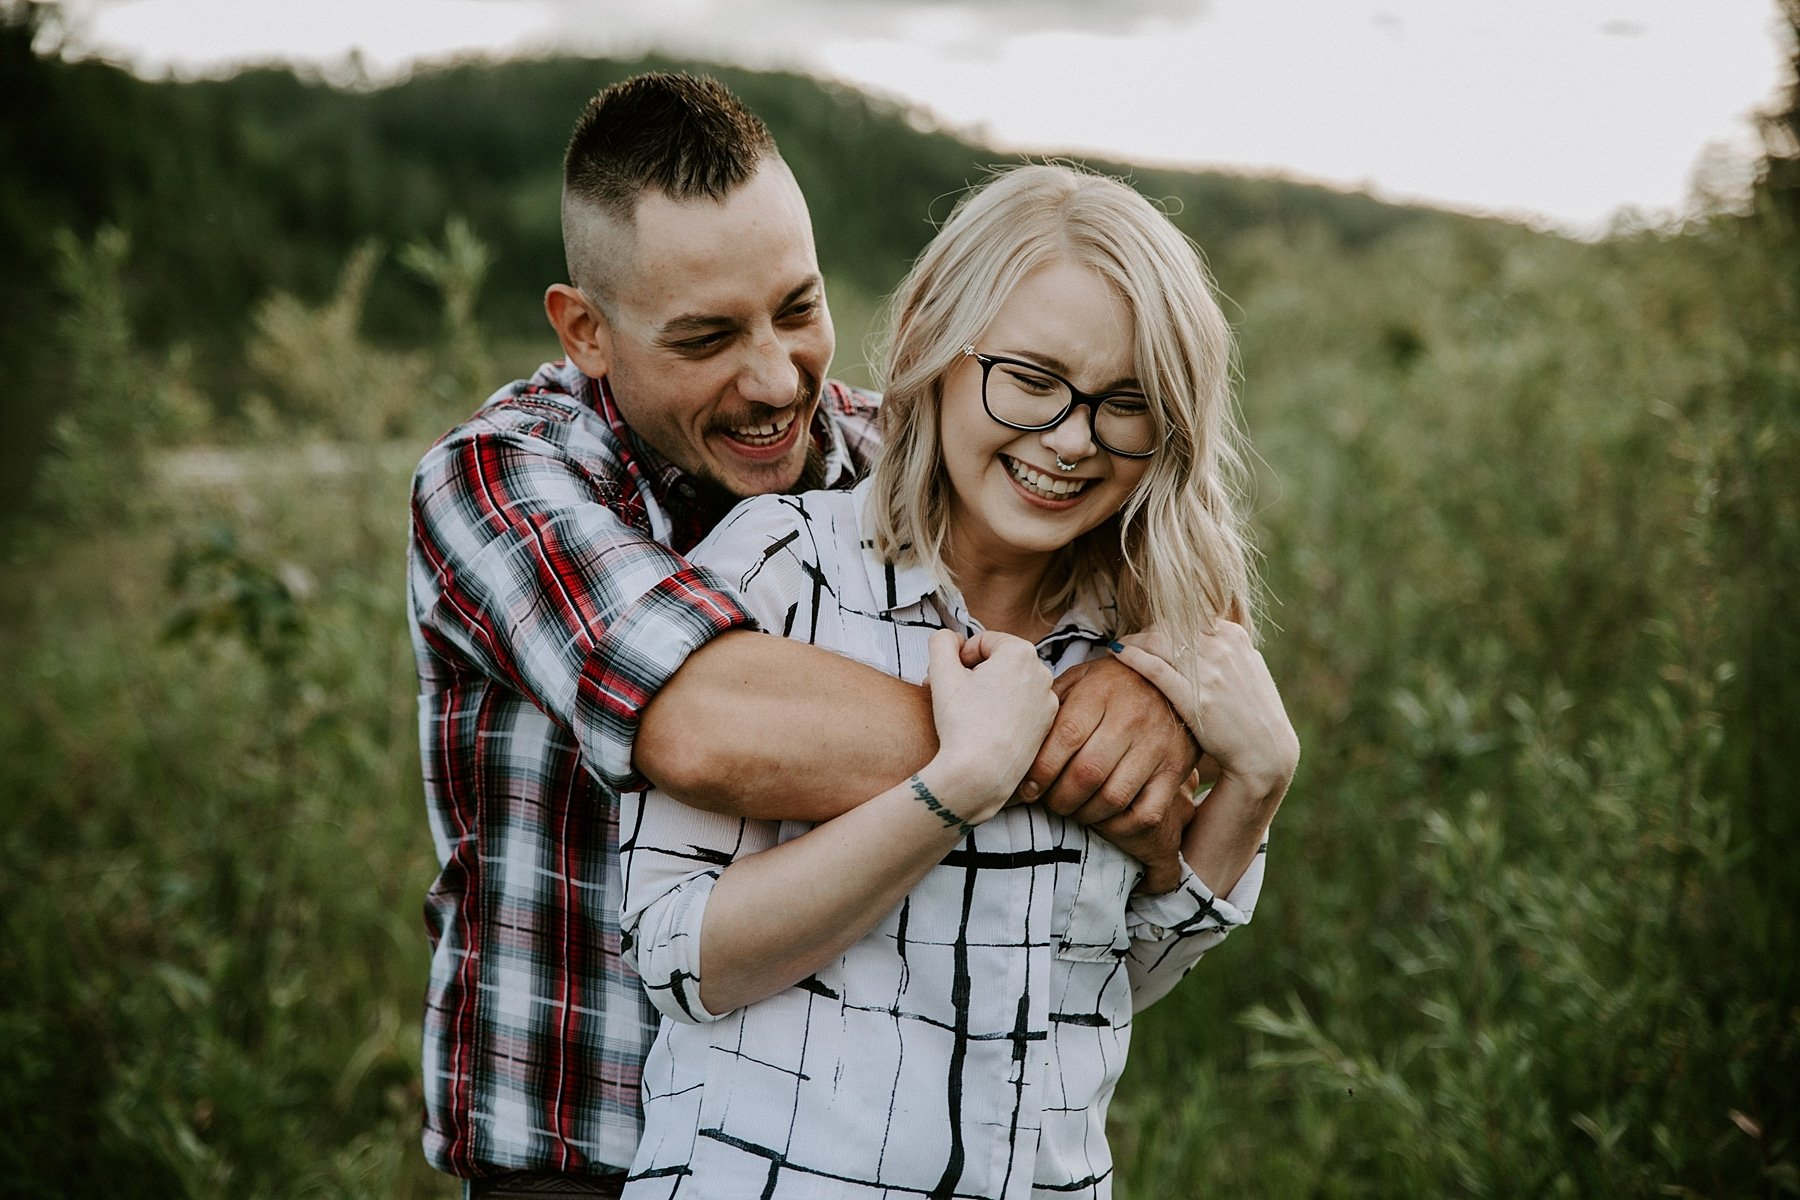 Edmonton engagement photos